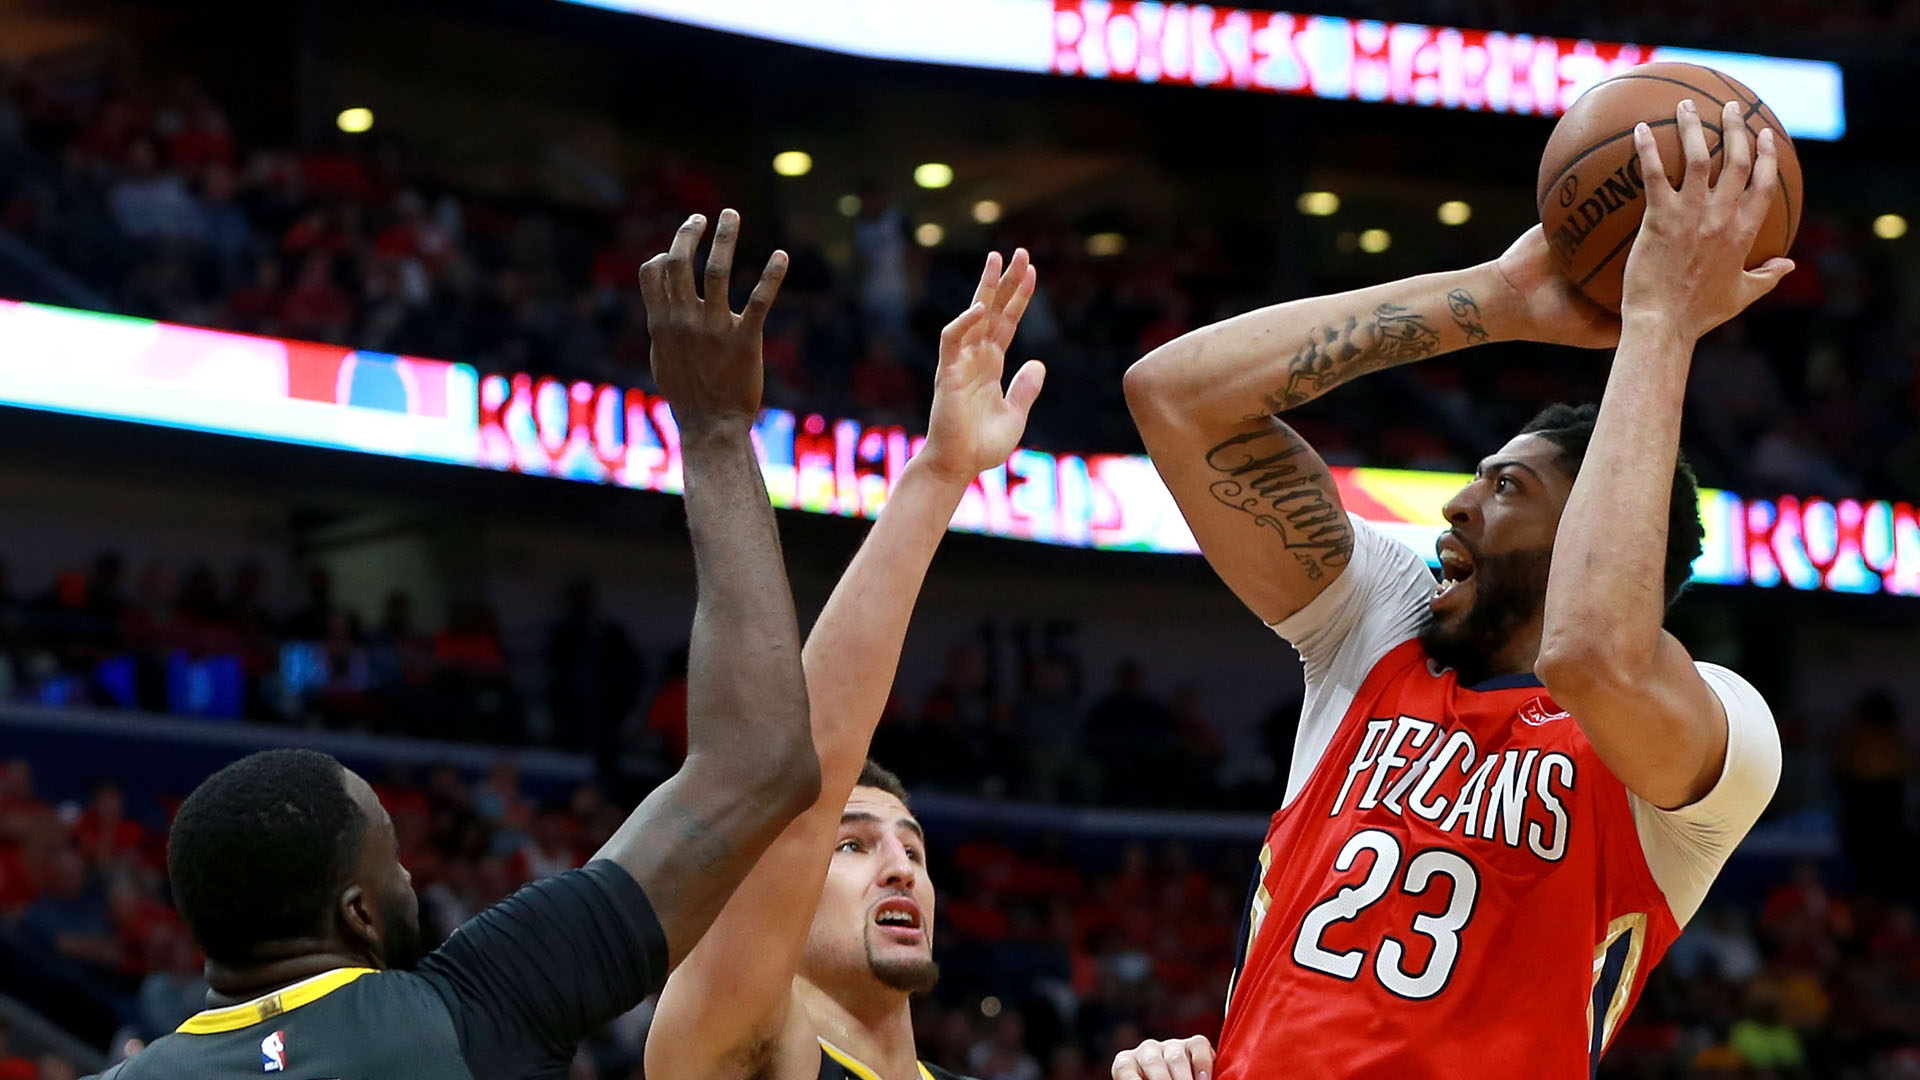 NBA playoffs wrap 2018: Pelicans, Rockets dominate, make both series 2-1